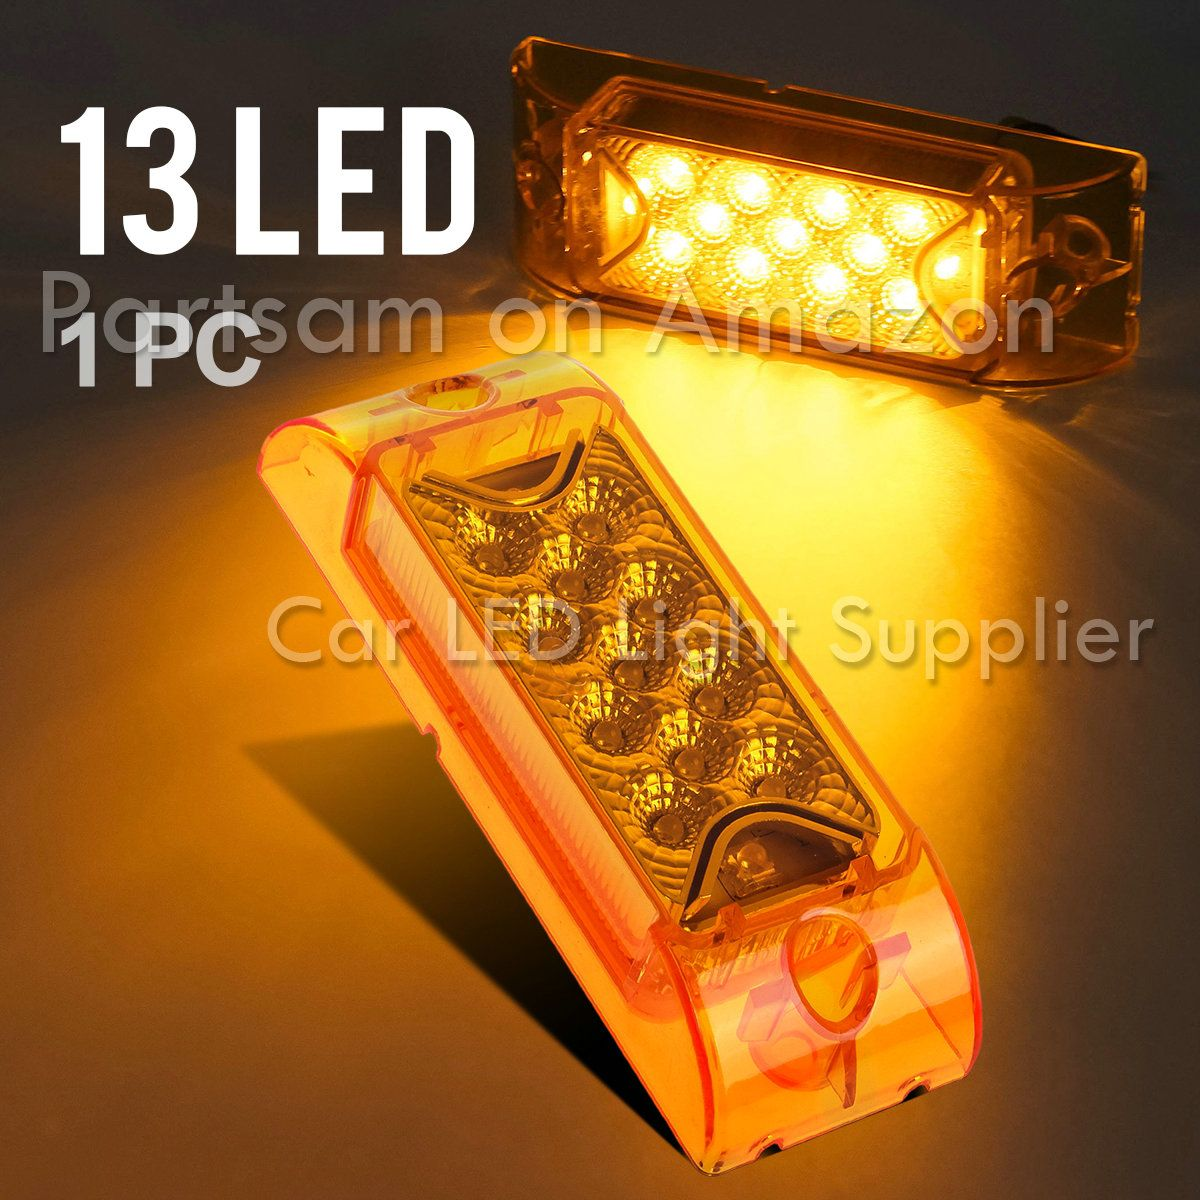 Partsam 2pcs Amber Led Rectangle Tail Stop Marker Light Trailer Wiring Clearance Lights Truck Rv 3 Wires 21led 6